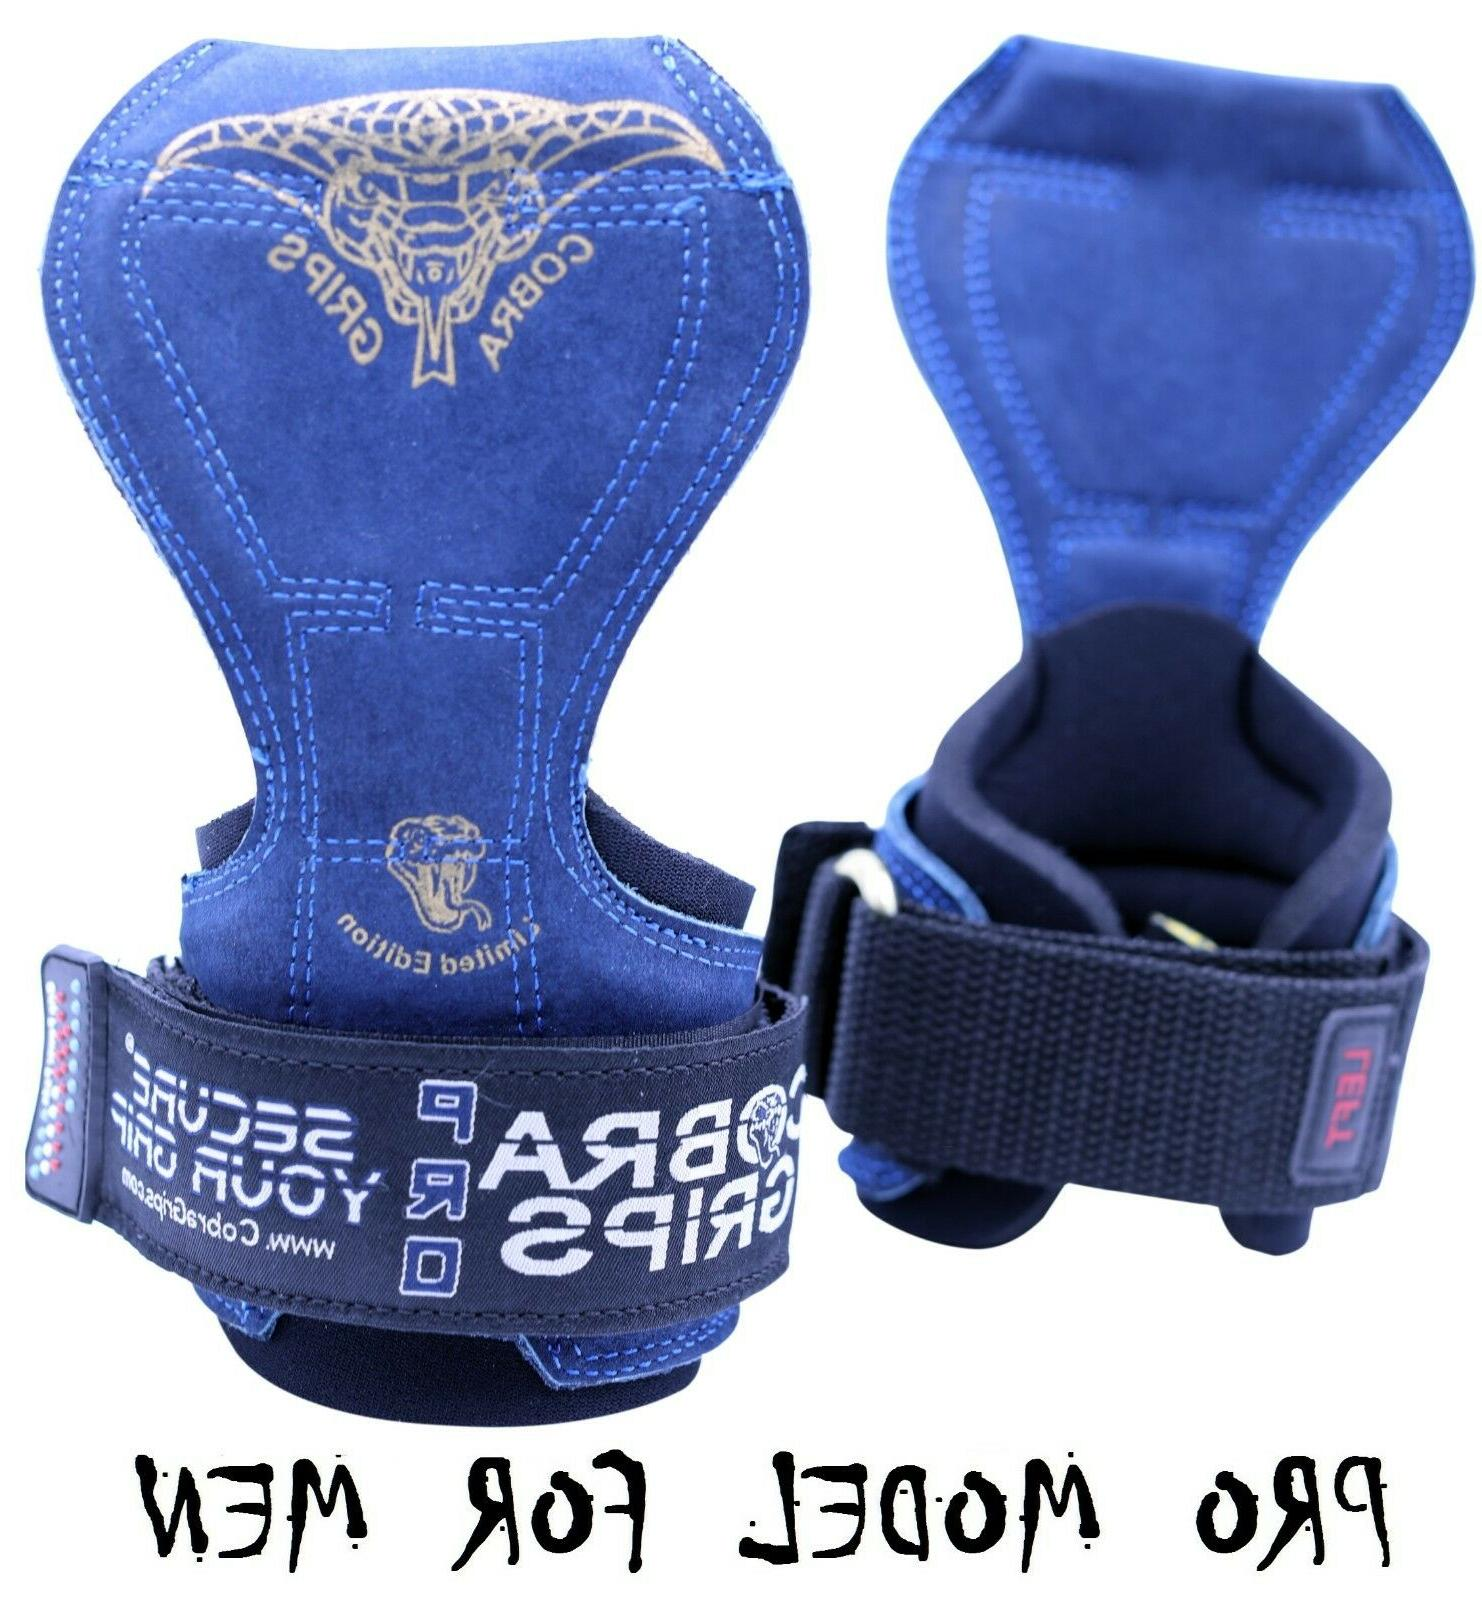 cobra grips pro series weight lifting straps